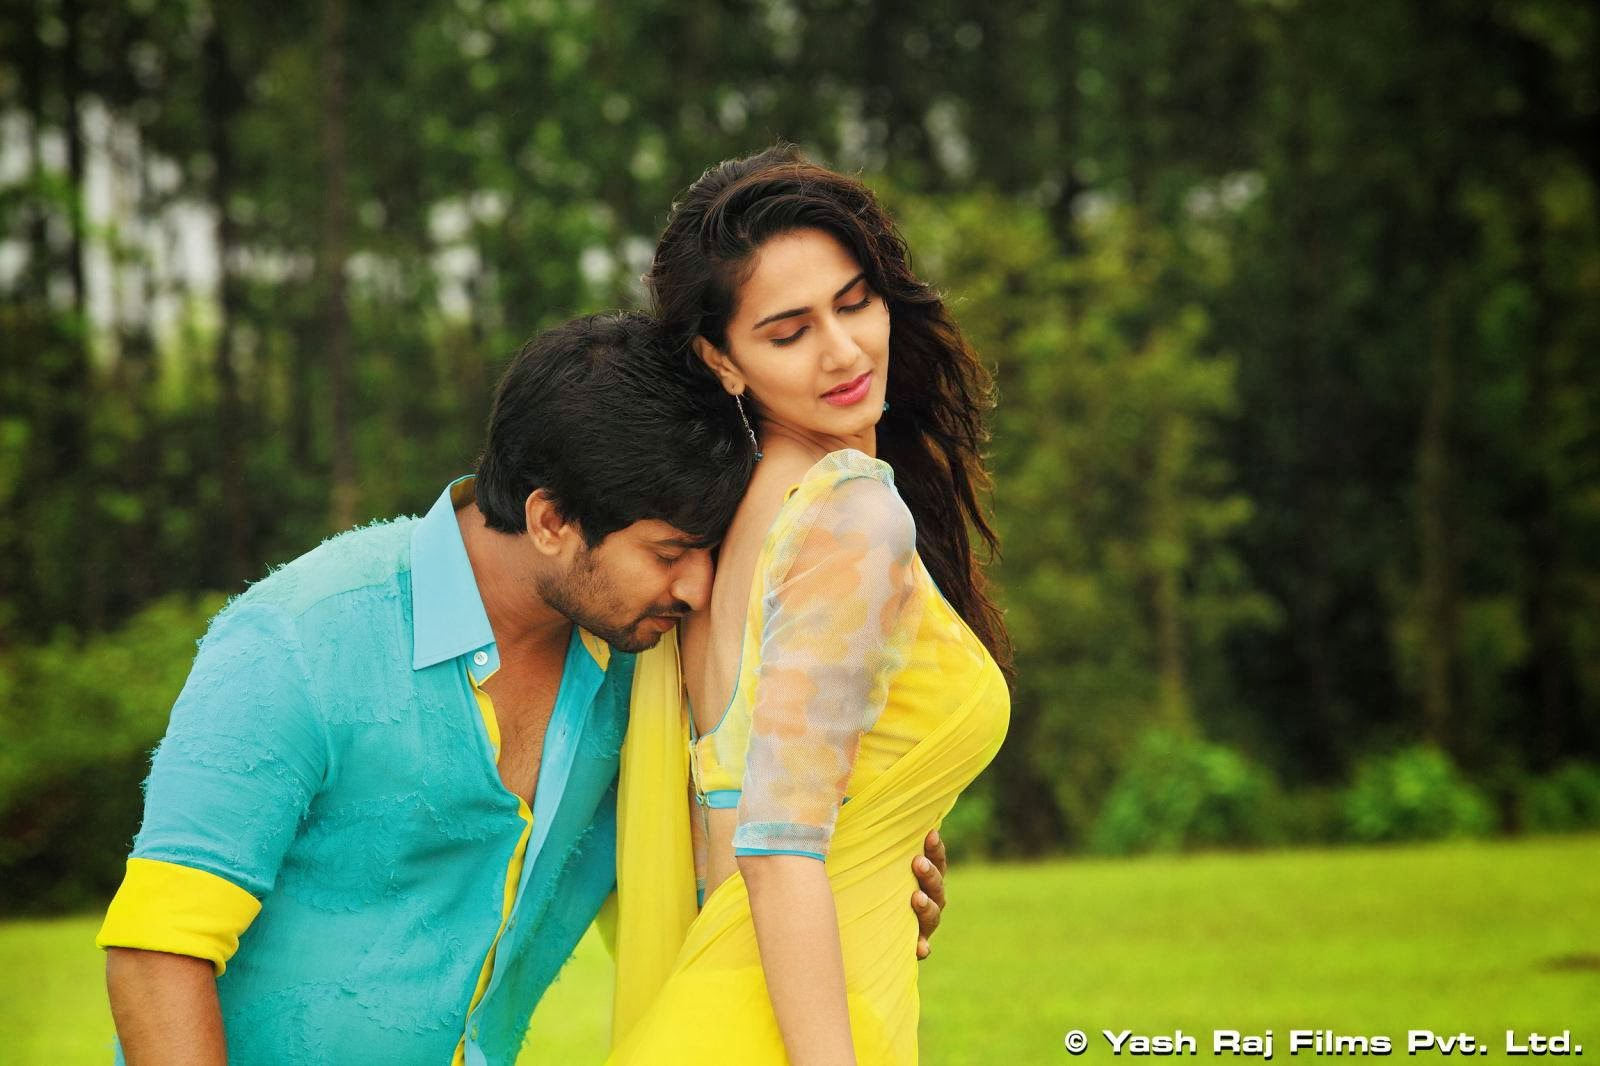 Nani And Vani Kapoor In Aaha Kalyanam Hd Wallpapers Just 10 Media